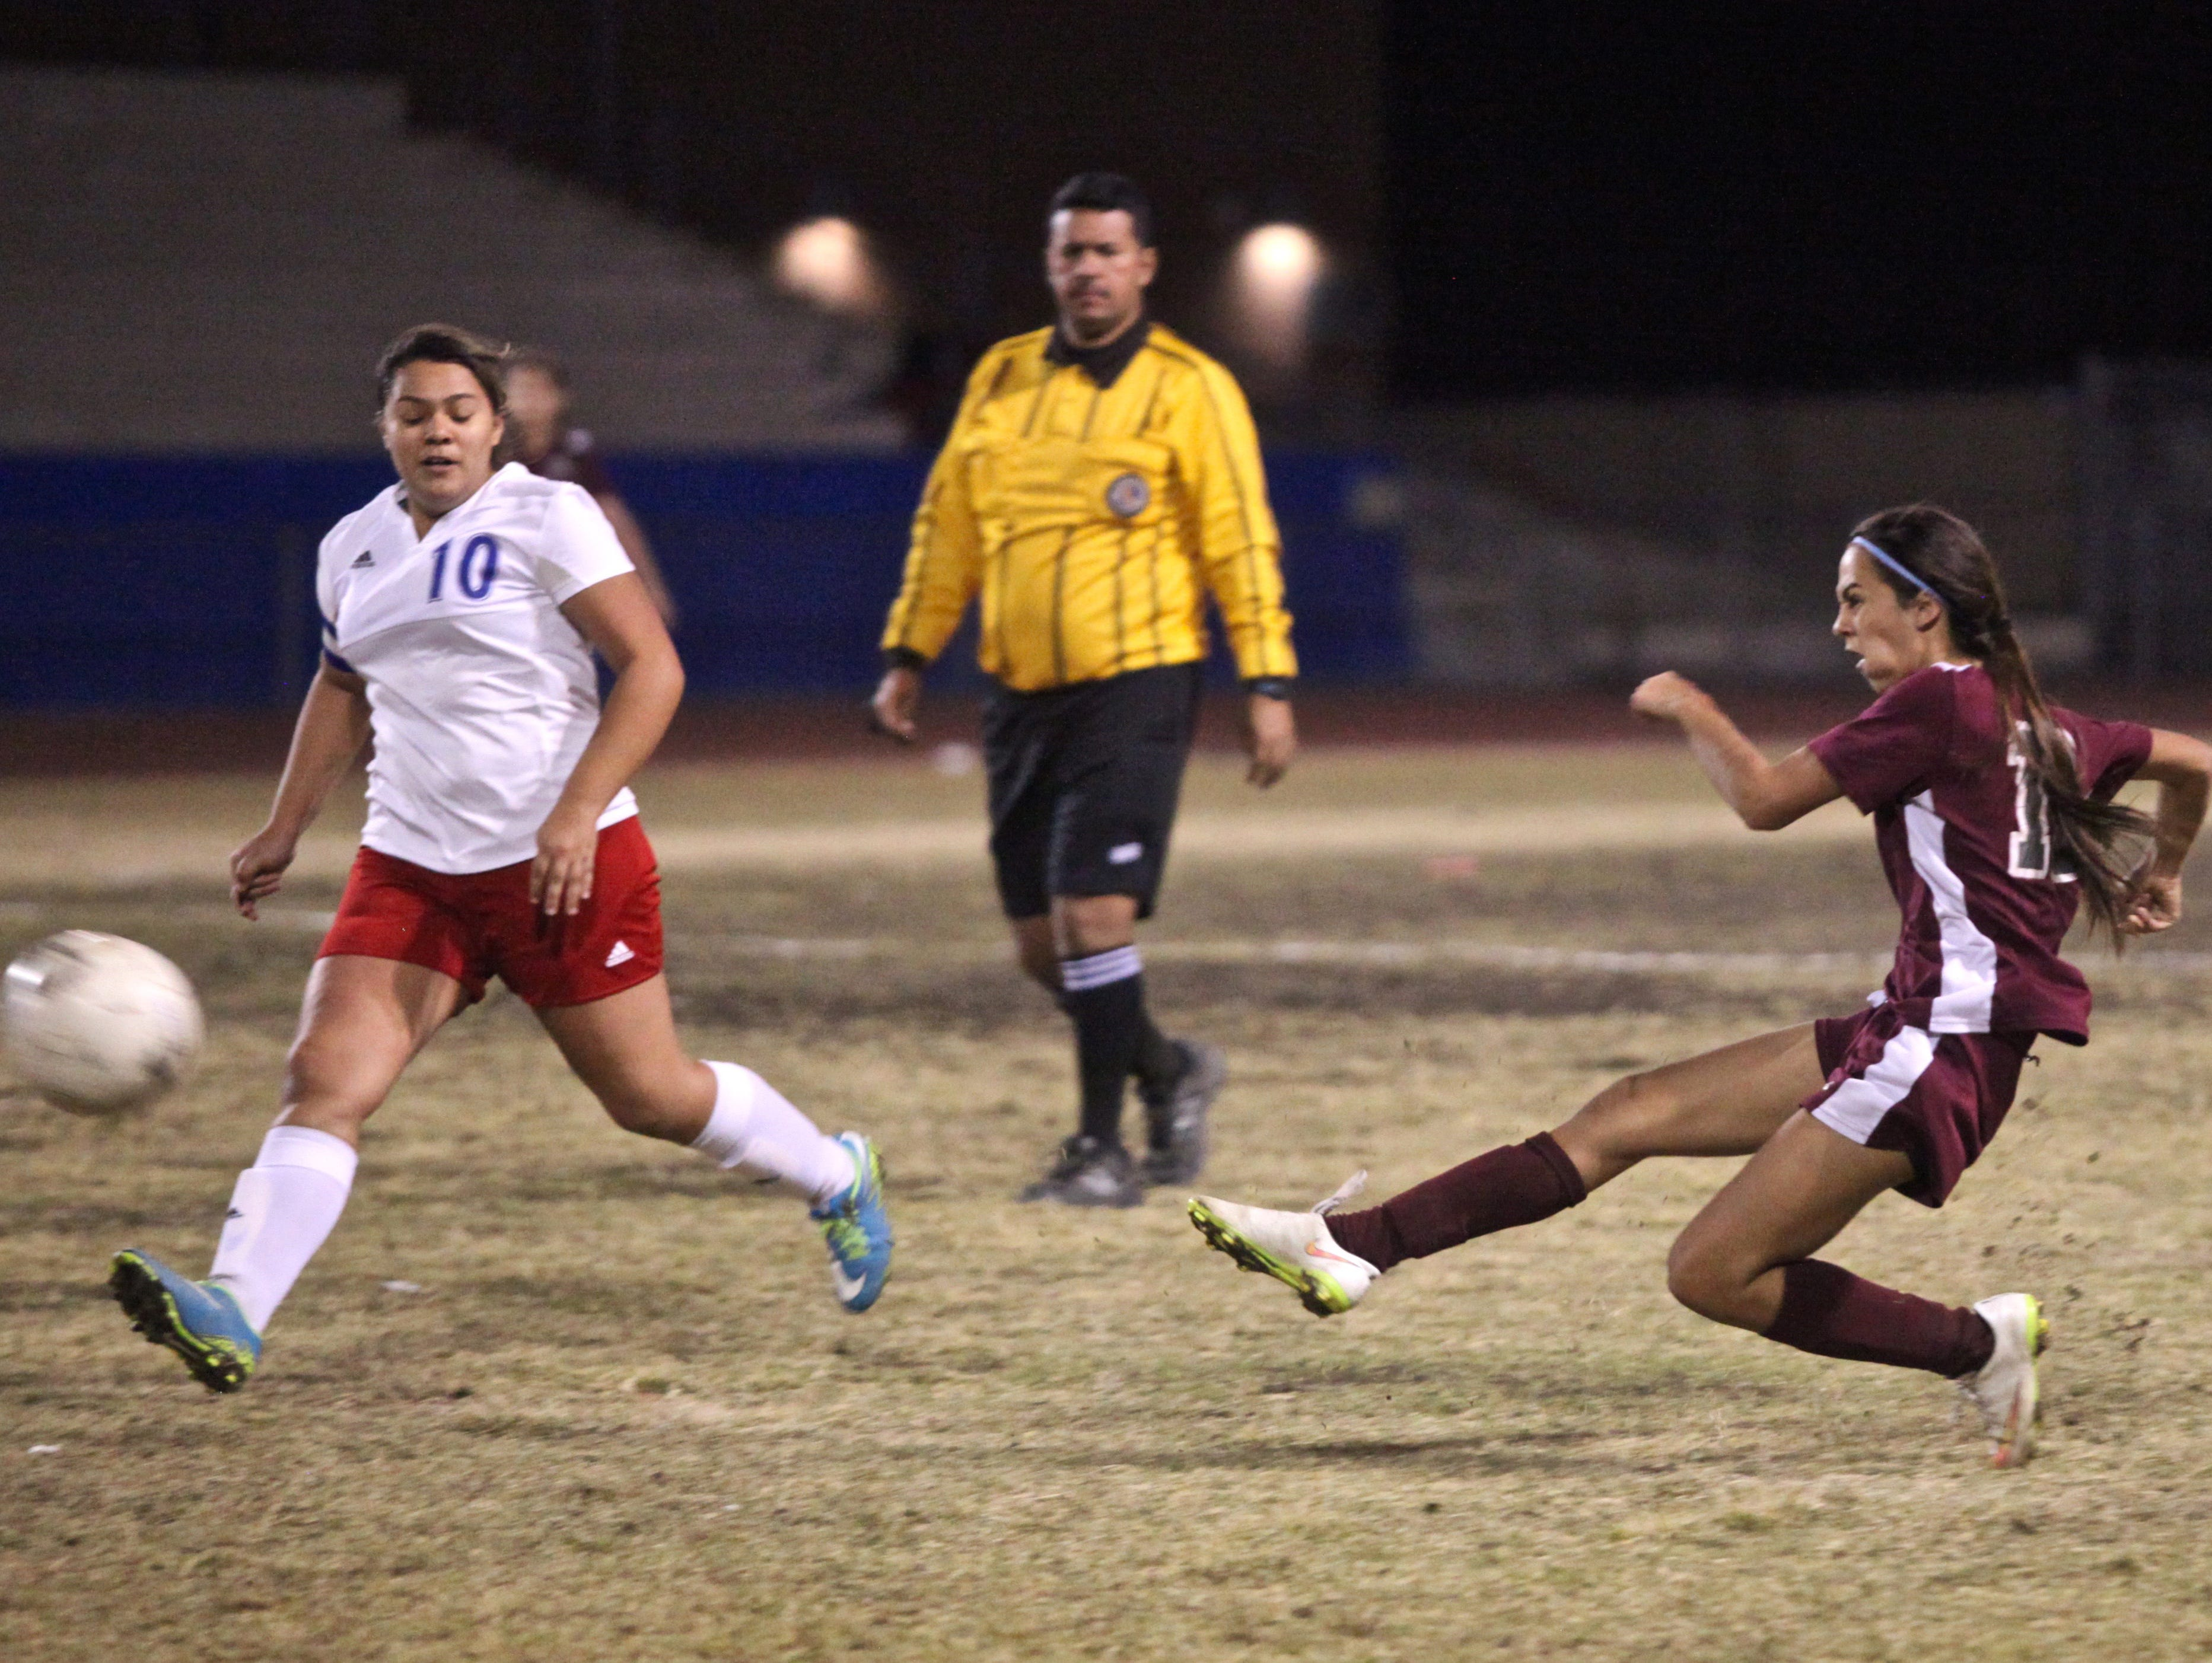 Rattlers' Fernanda Mercado (19) attempts a long shot during an away match with the Rajahs on Tuesday.